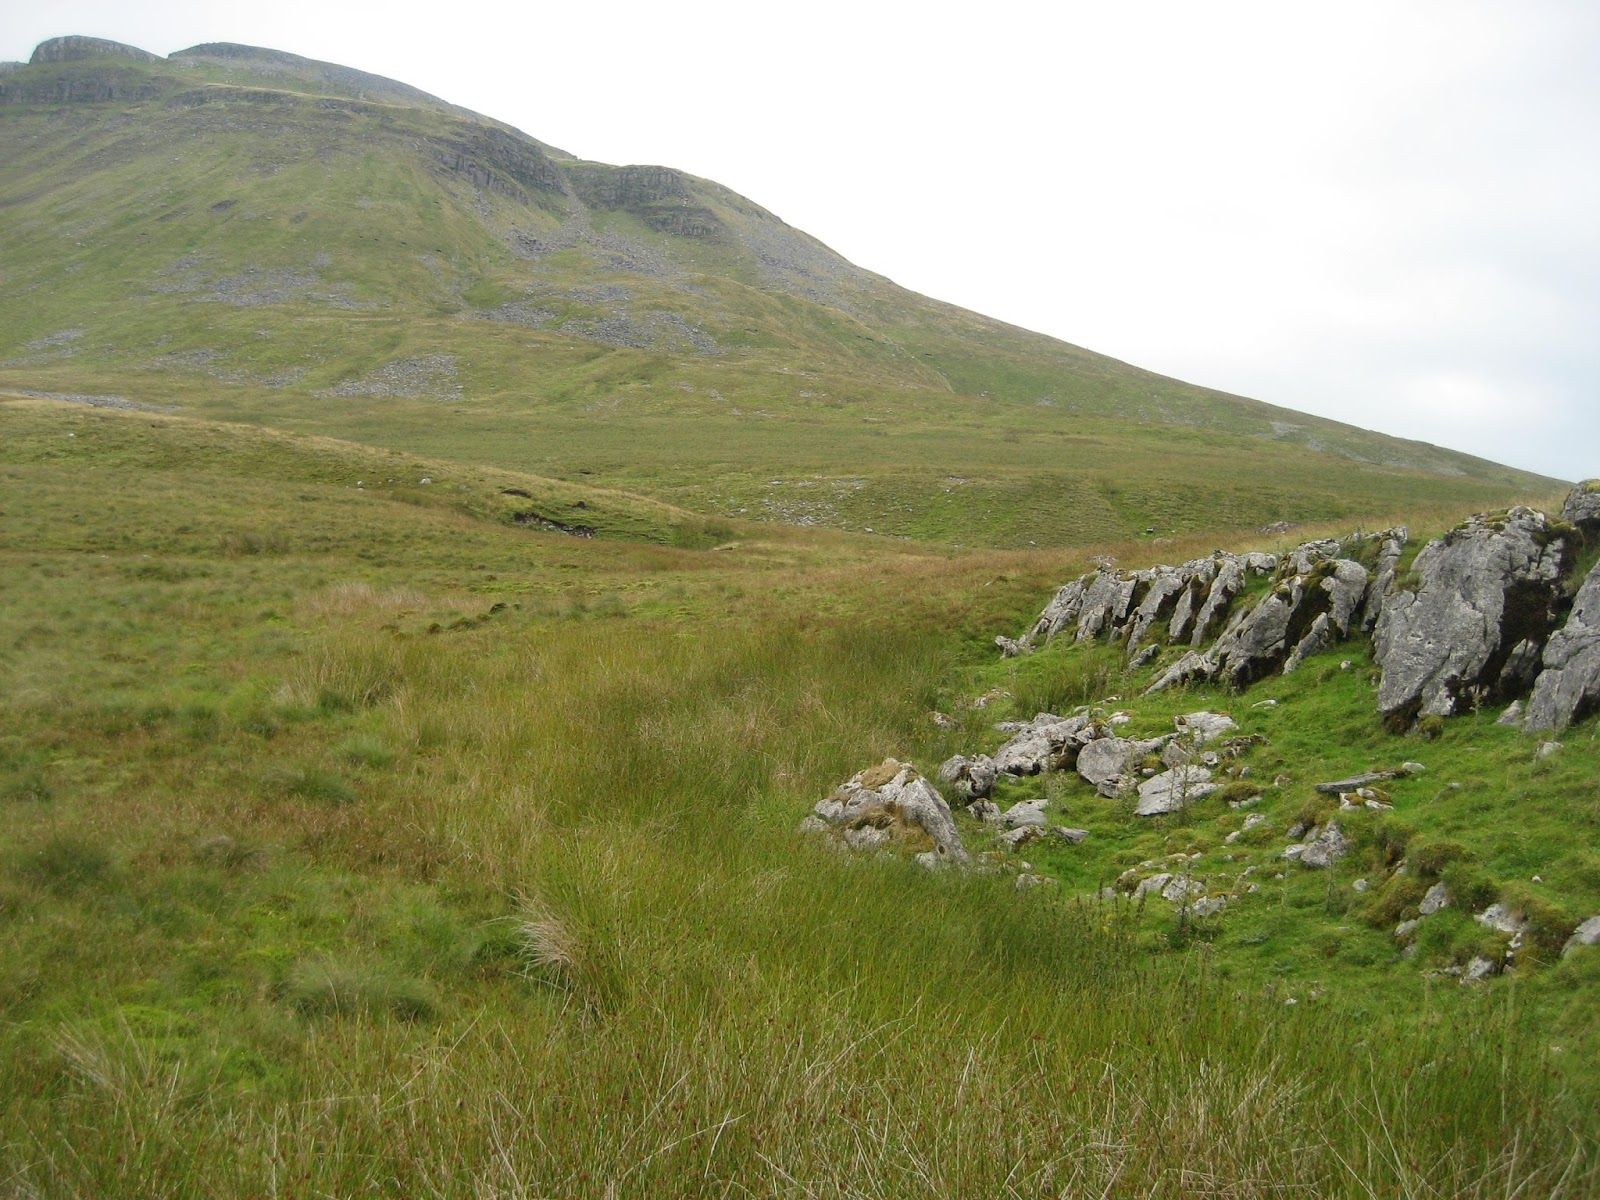 The Fault scarp of Green Edge with the benches clearly lowered on the left, and raised on the right. Stephen Oldfield